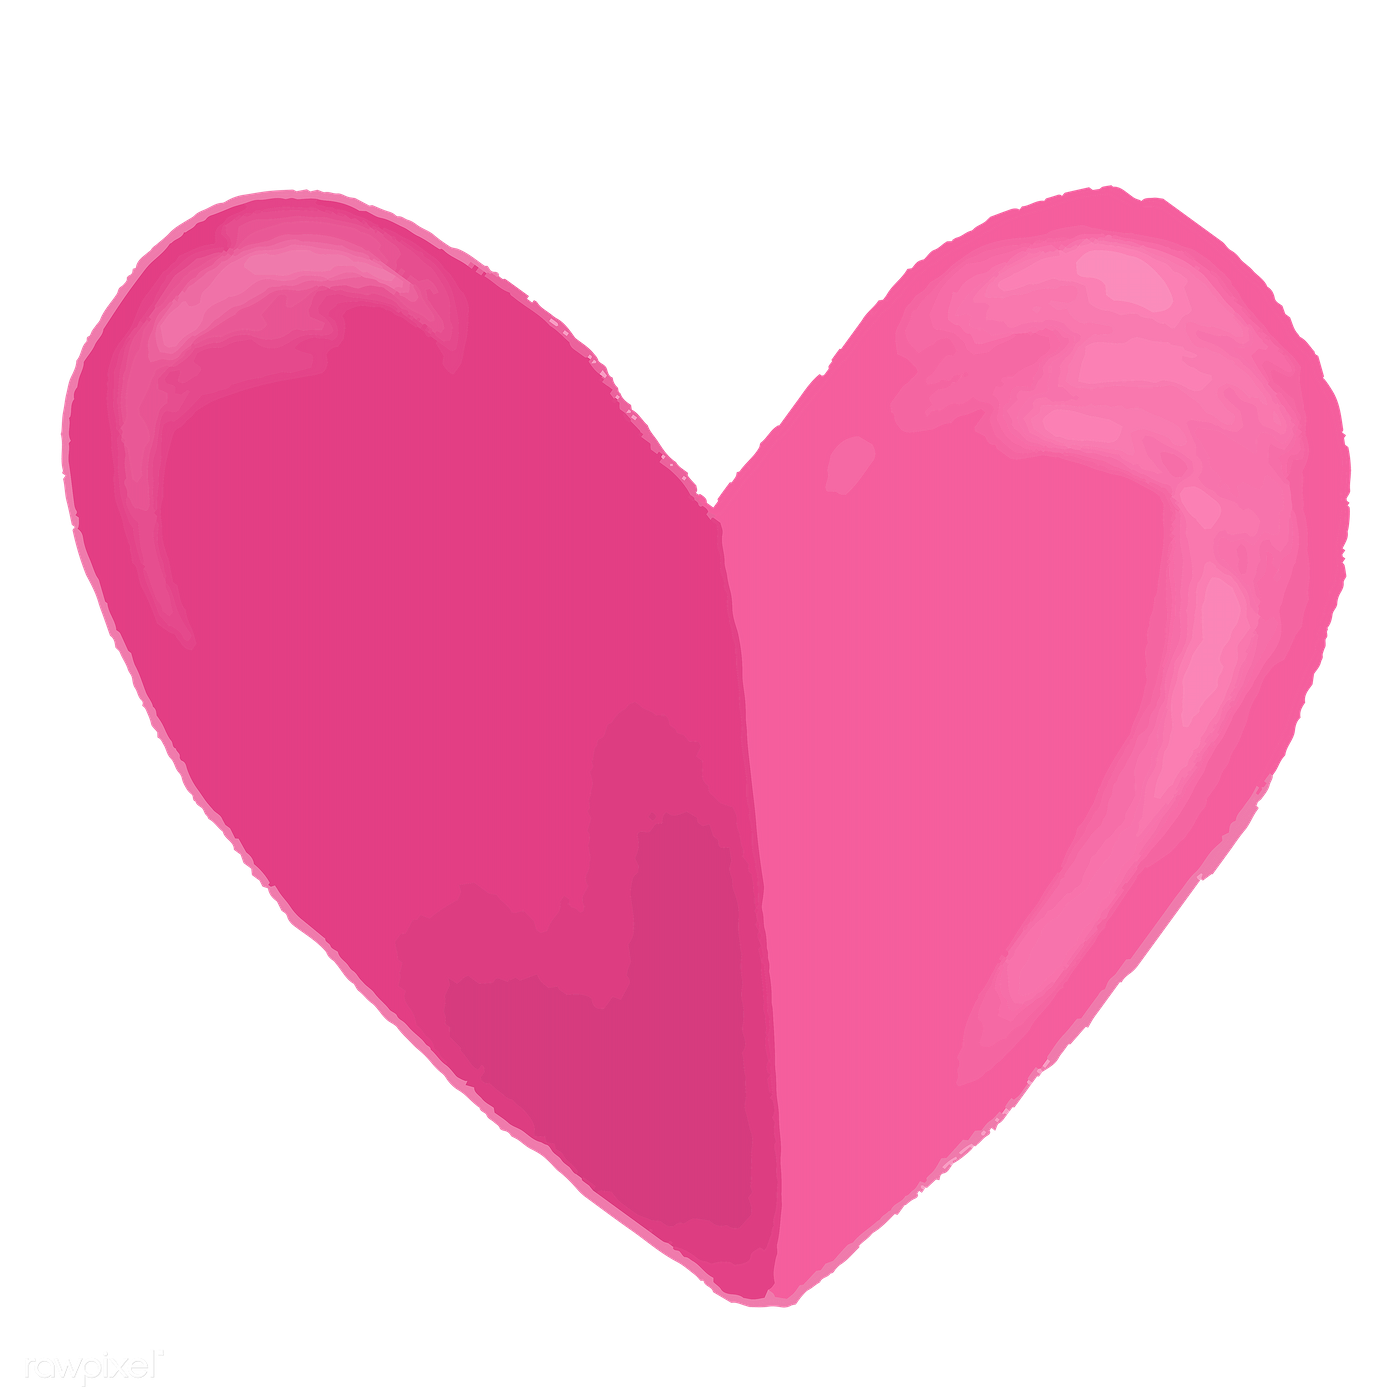 Hand drawn pink heart | Free transparent png - 1231023